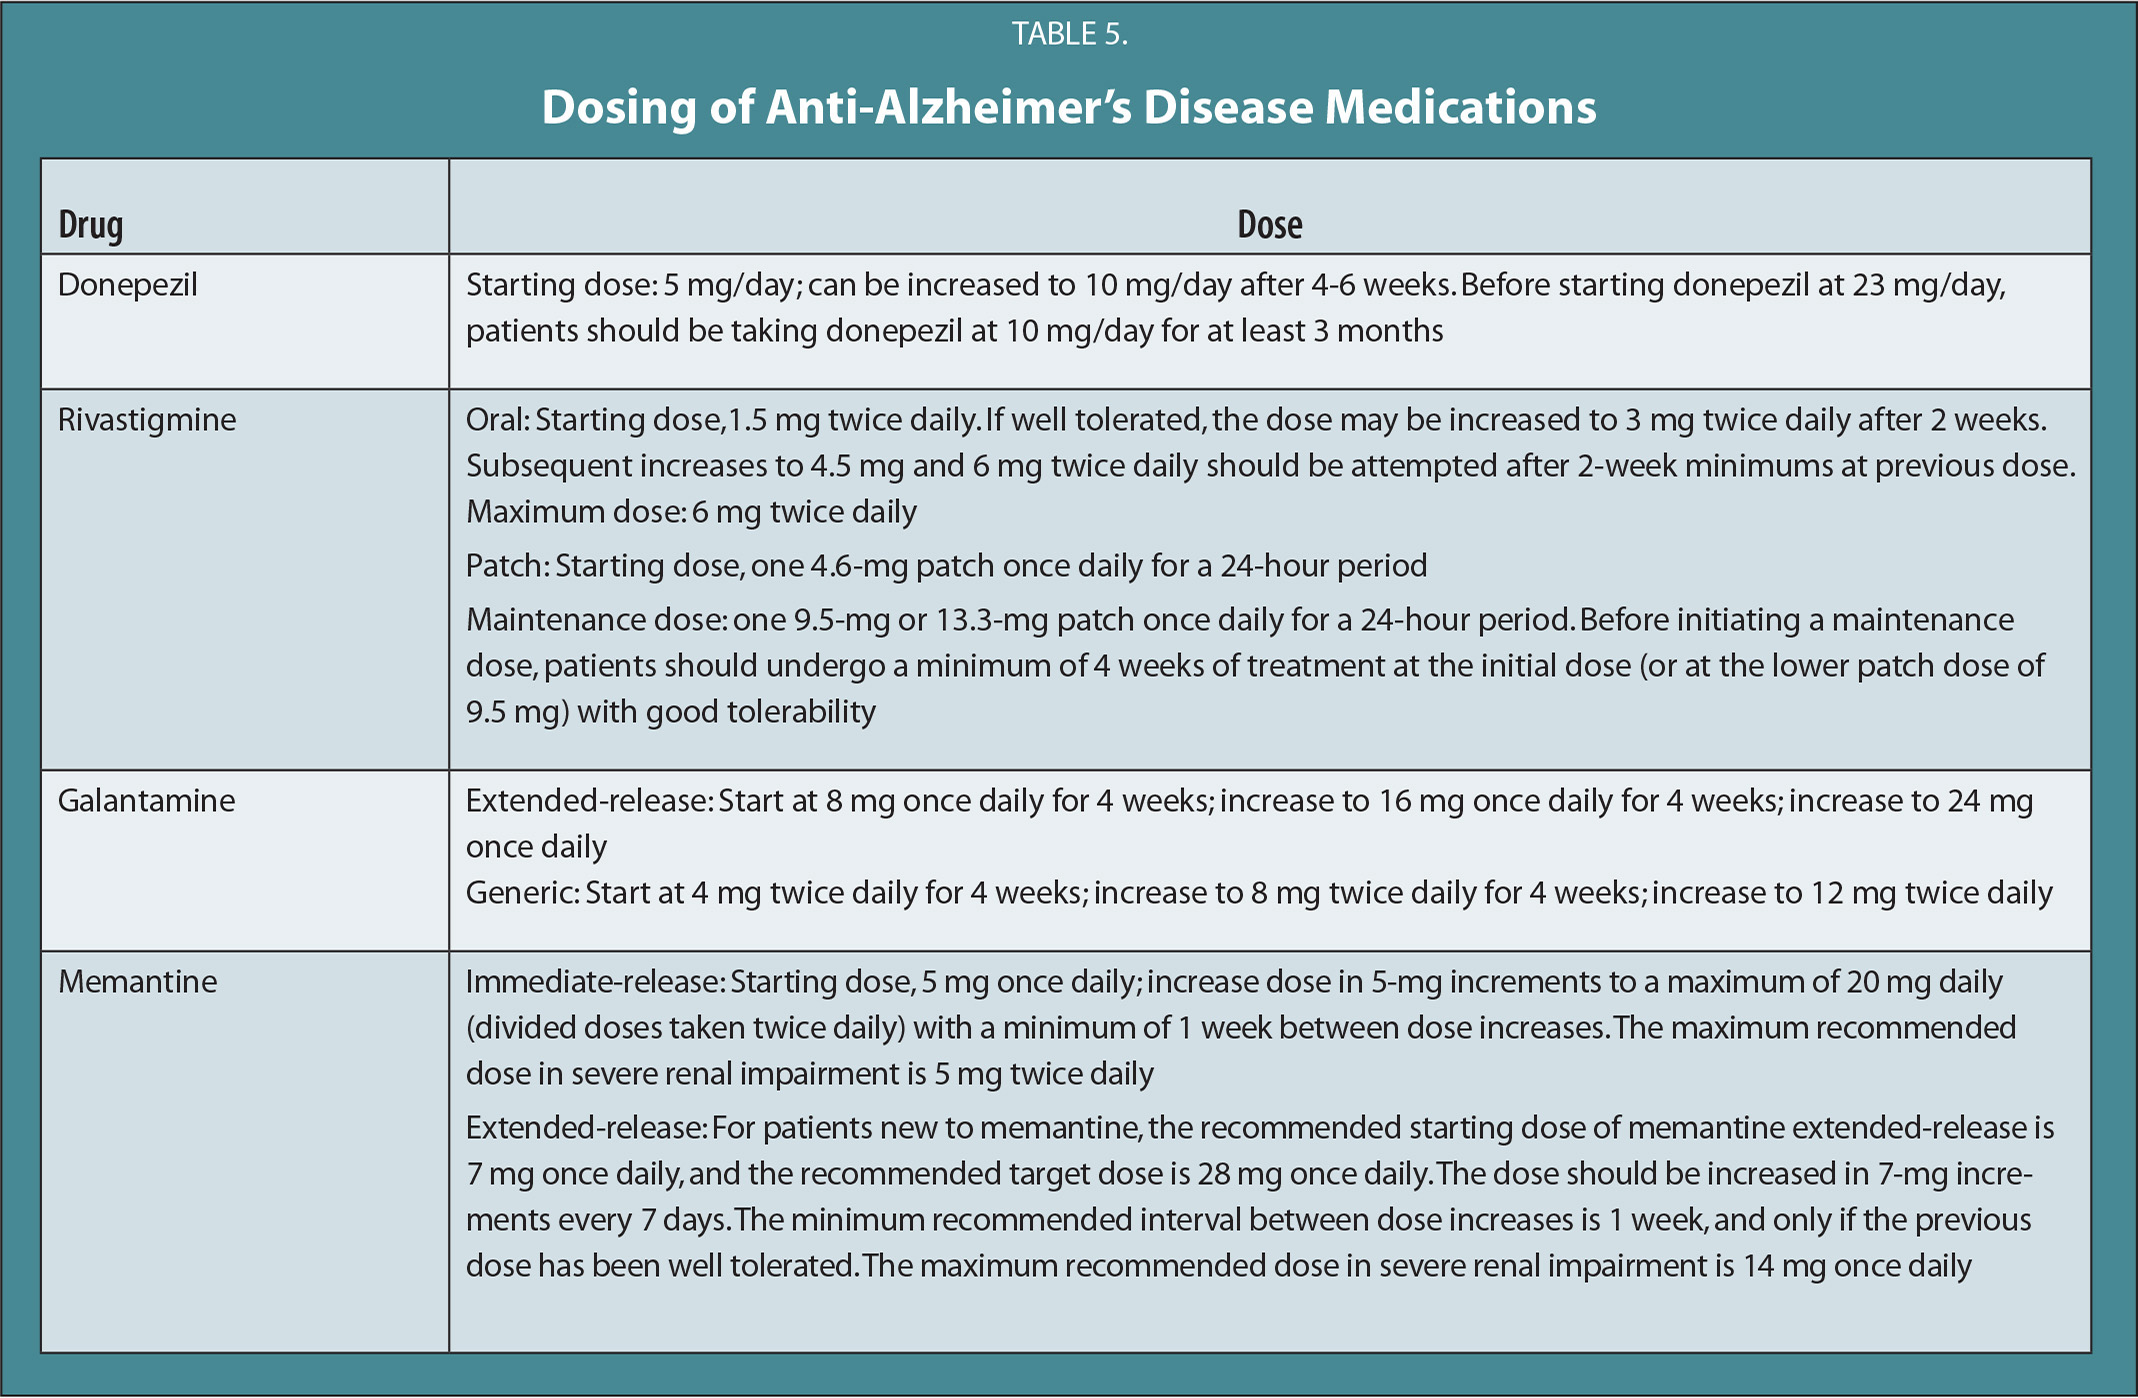 Dosing of Anti-Alzheimer's Disease Medications